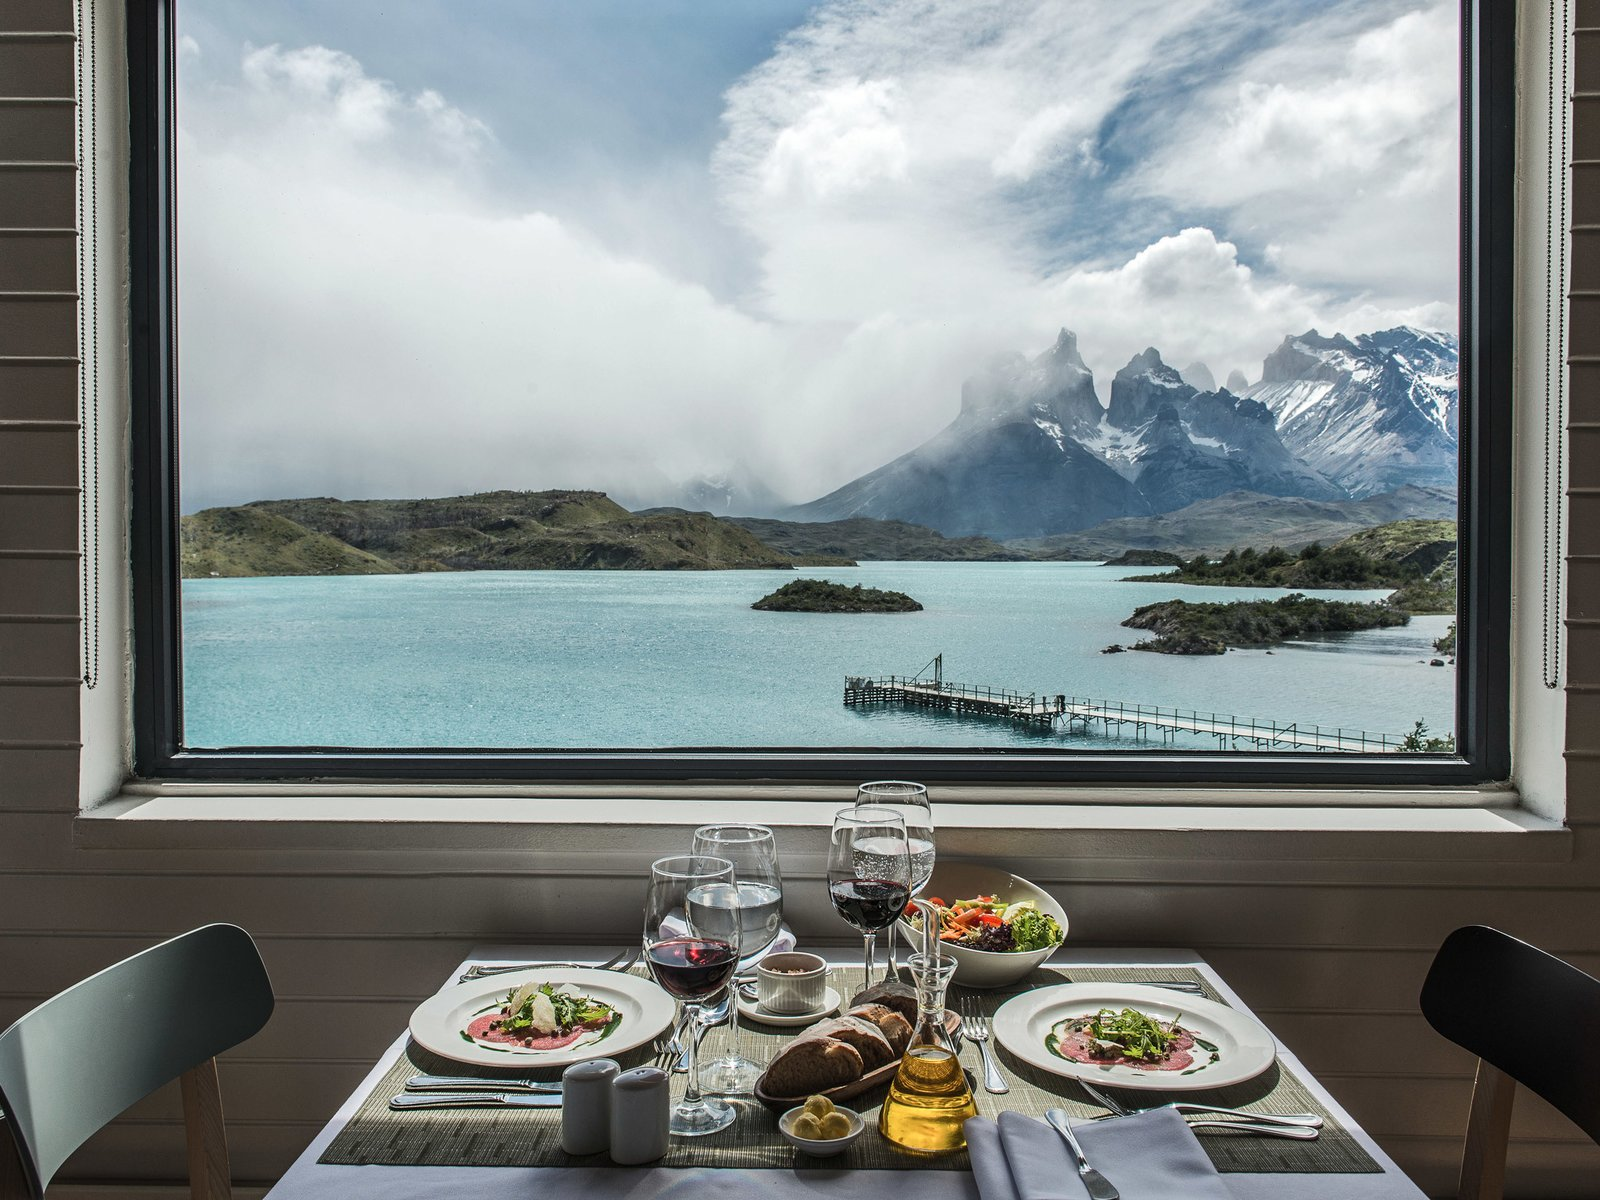 Photo 2 of 9 in Explora Patagonia Hotel – Your New Bucket List Addition